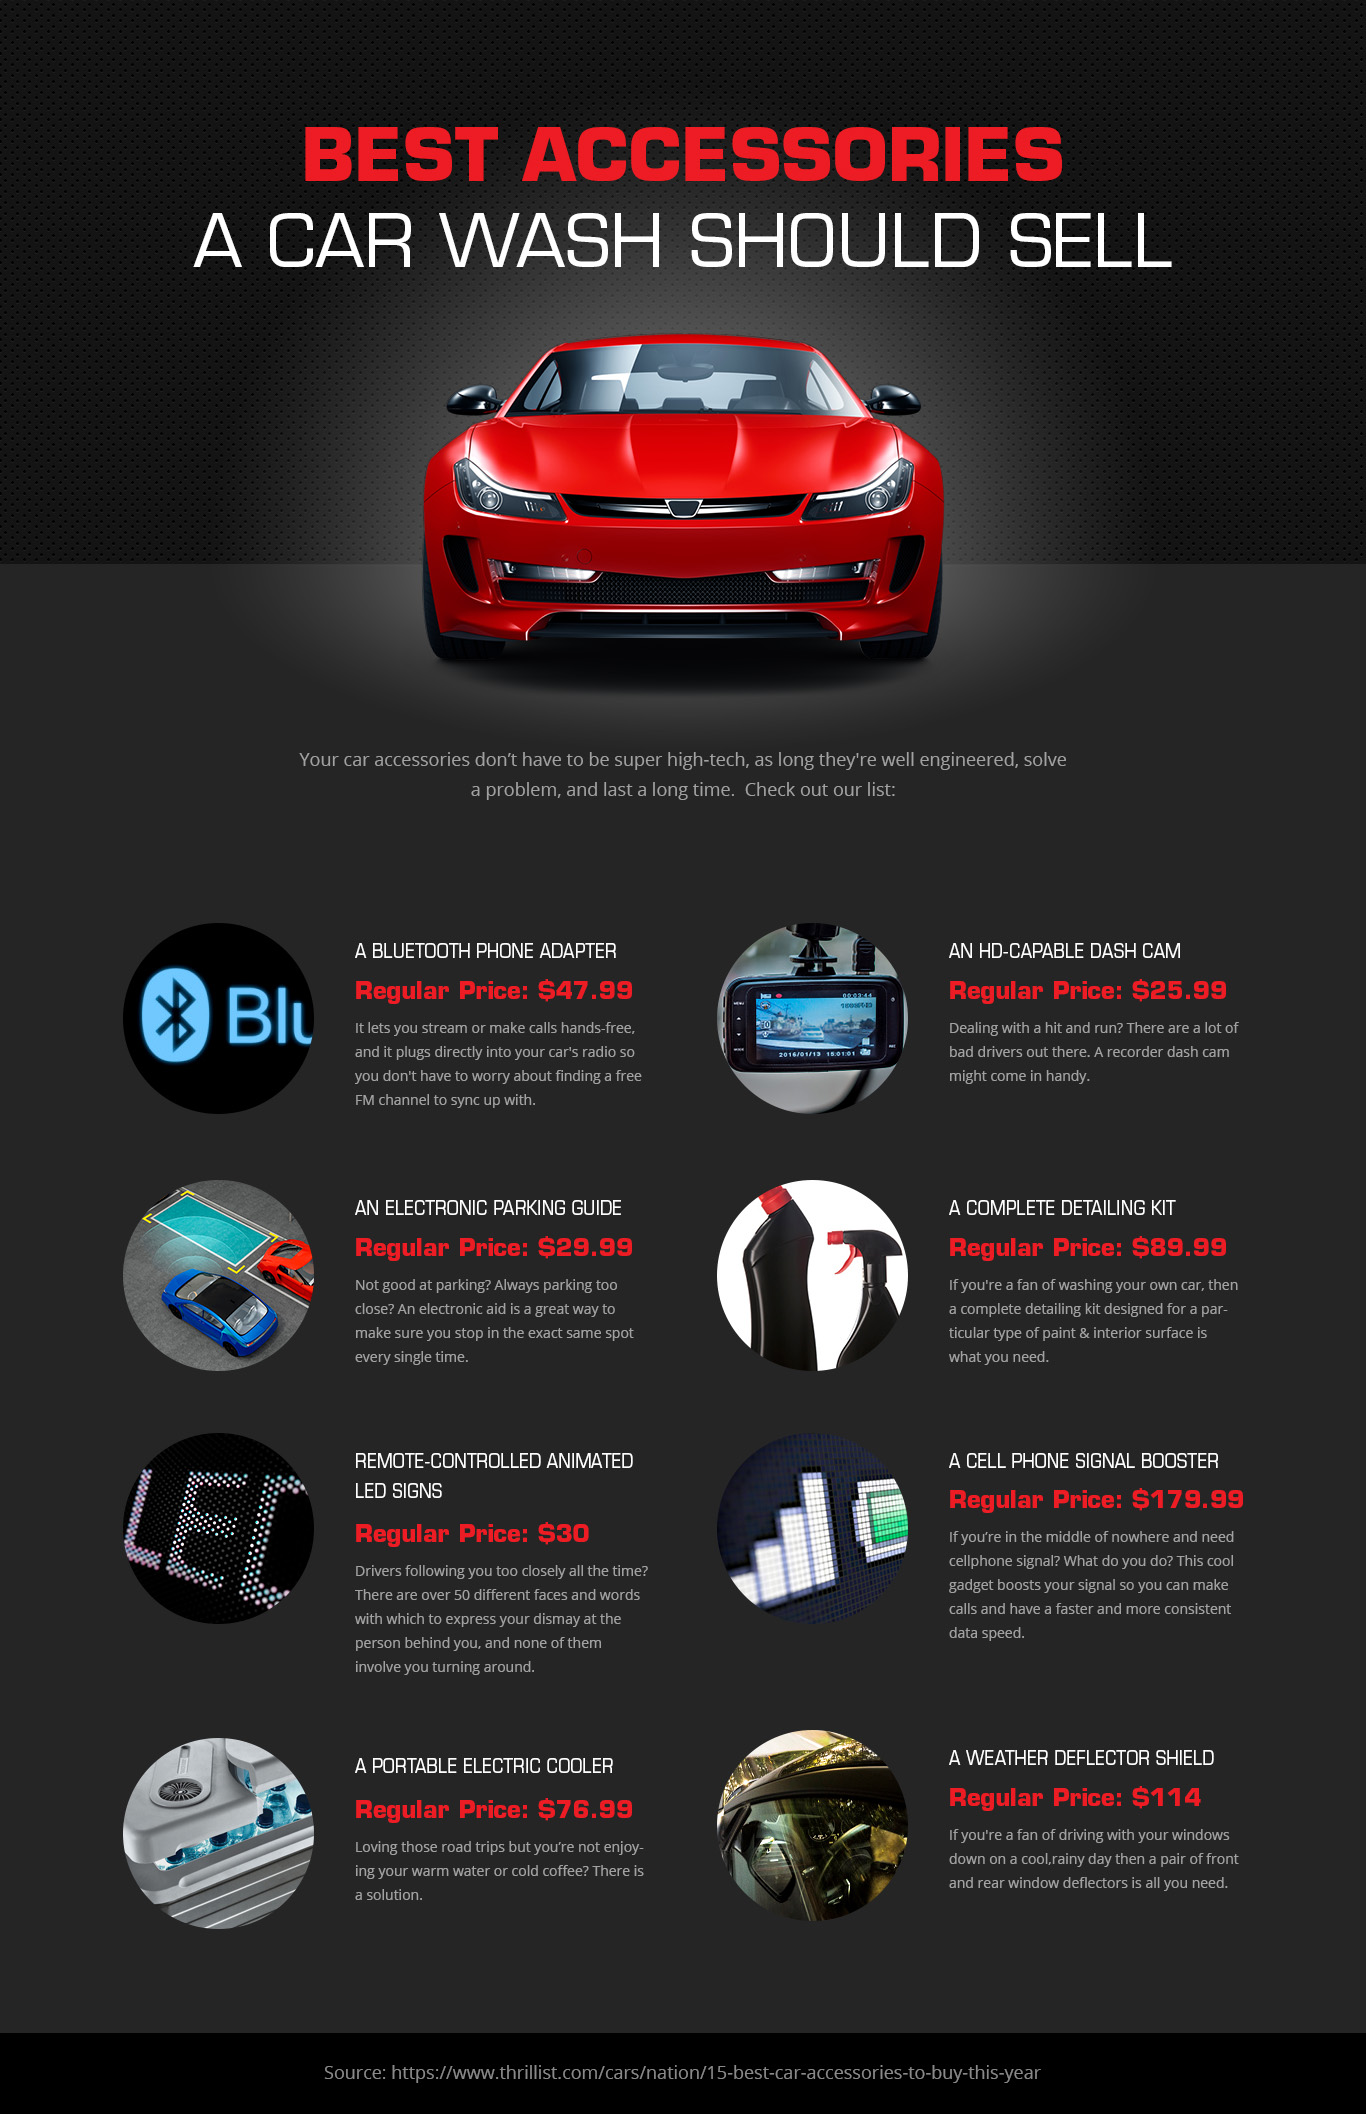 Infographic Best Car Accessories A Carwash Should Sell